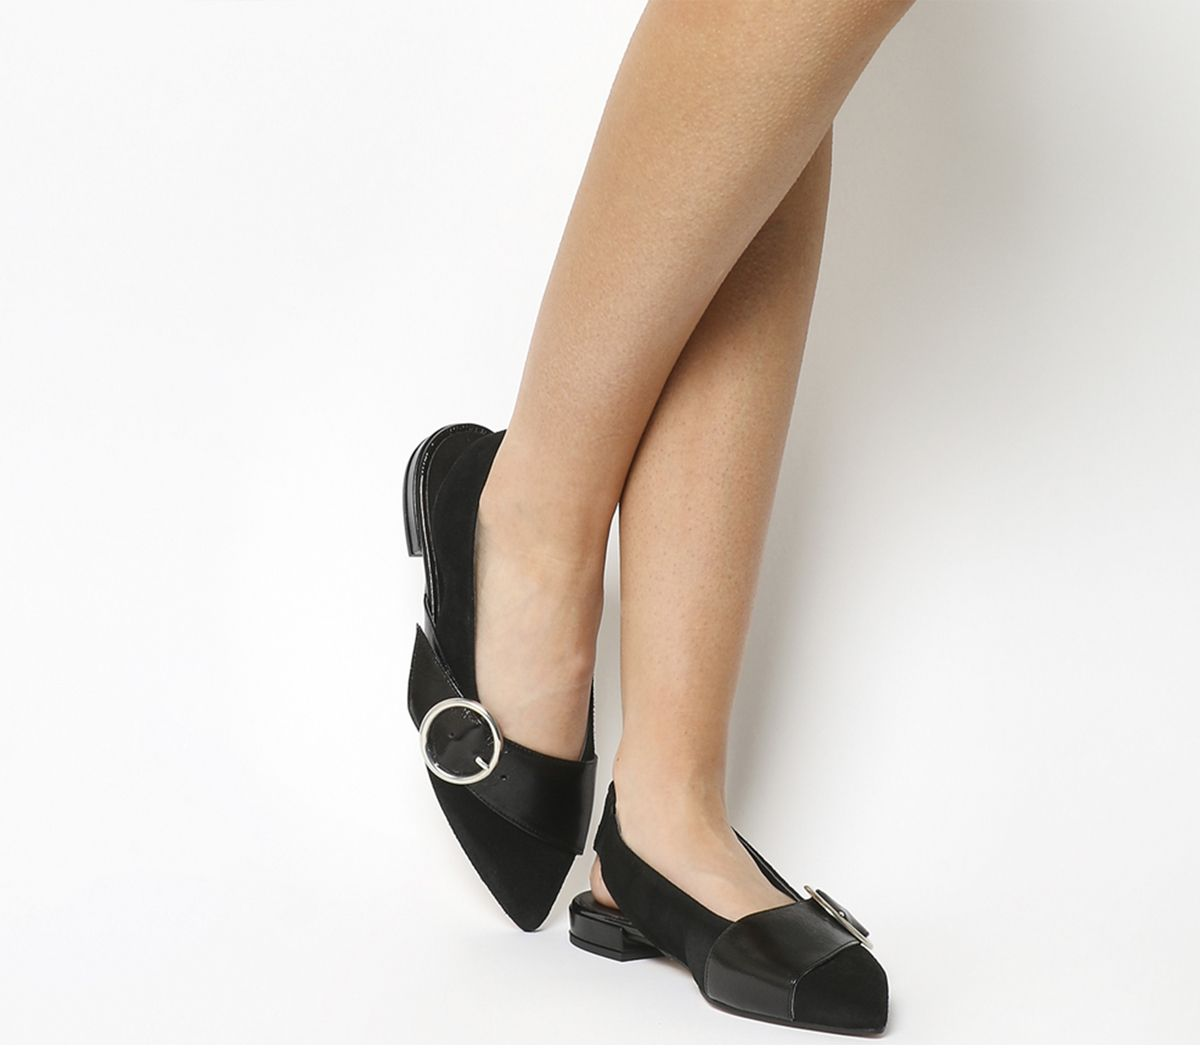 Office Fantastic Point Flats Black Leather - Flats - photo#47